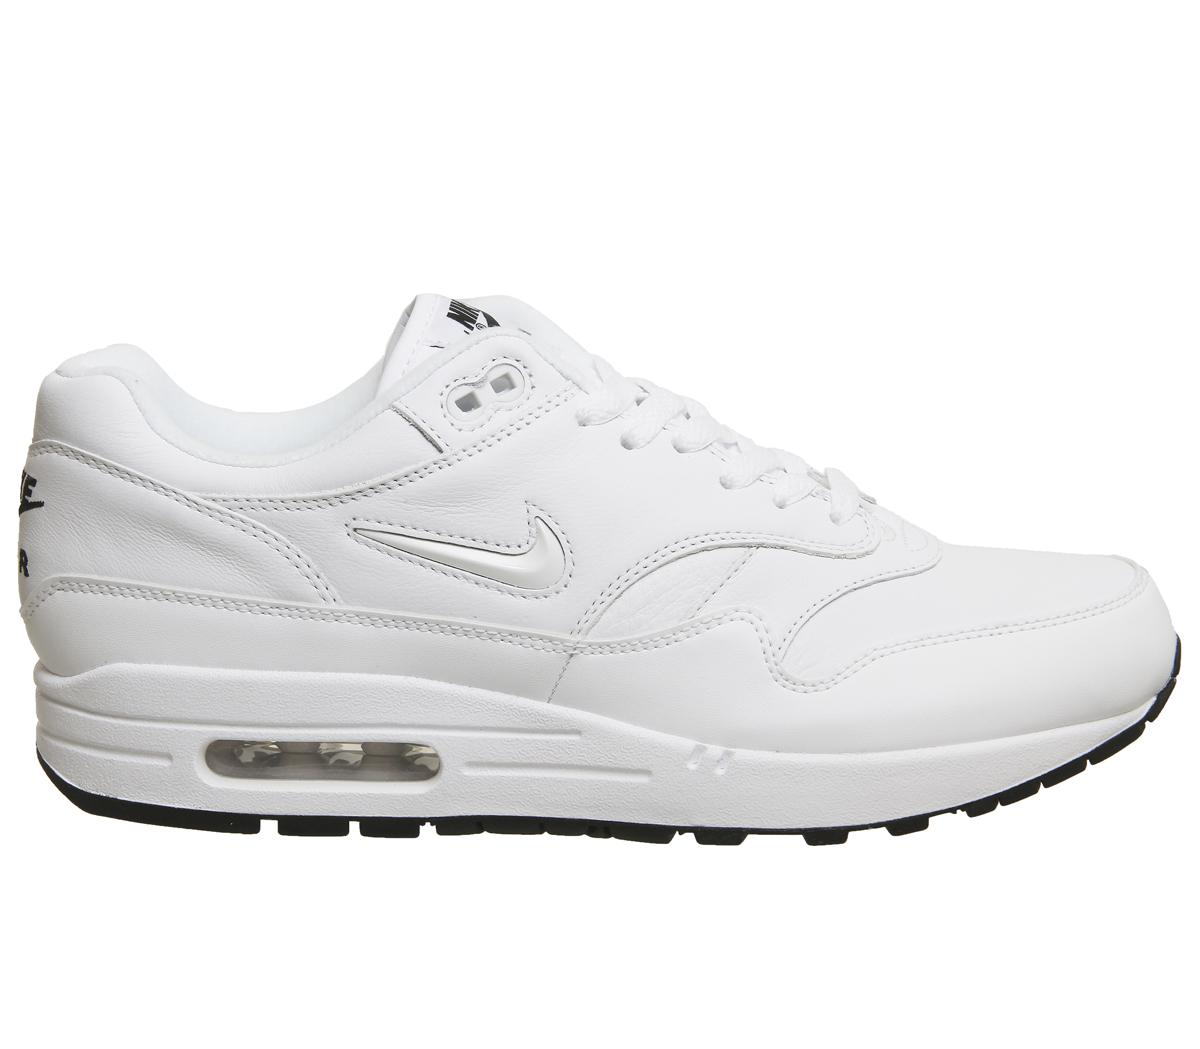 new arrival 43921 38937 Lyst - Nike Air Max 1 Jewel Trainers in White for Men